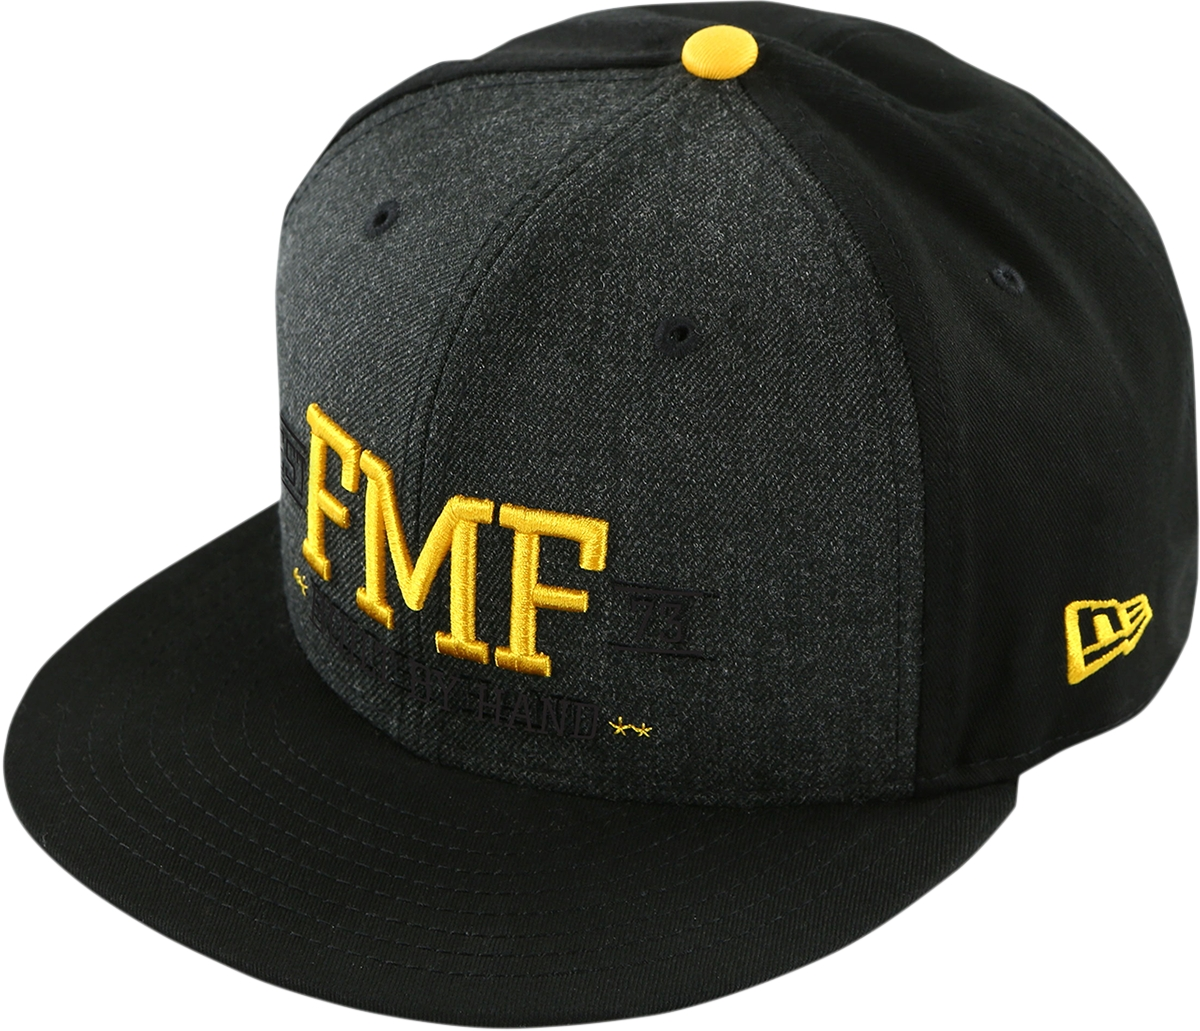 FMF Racing District Hat